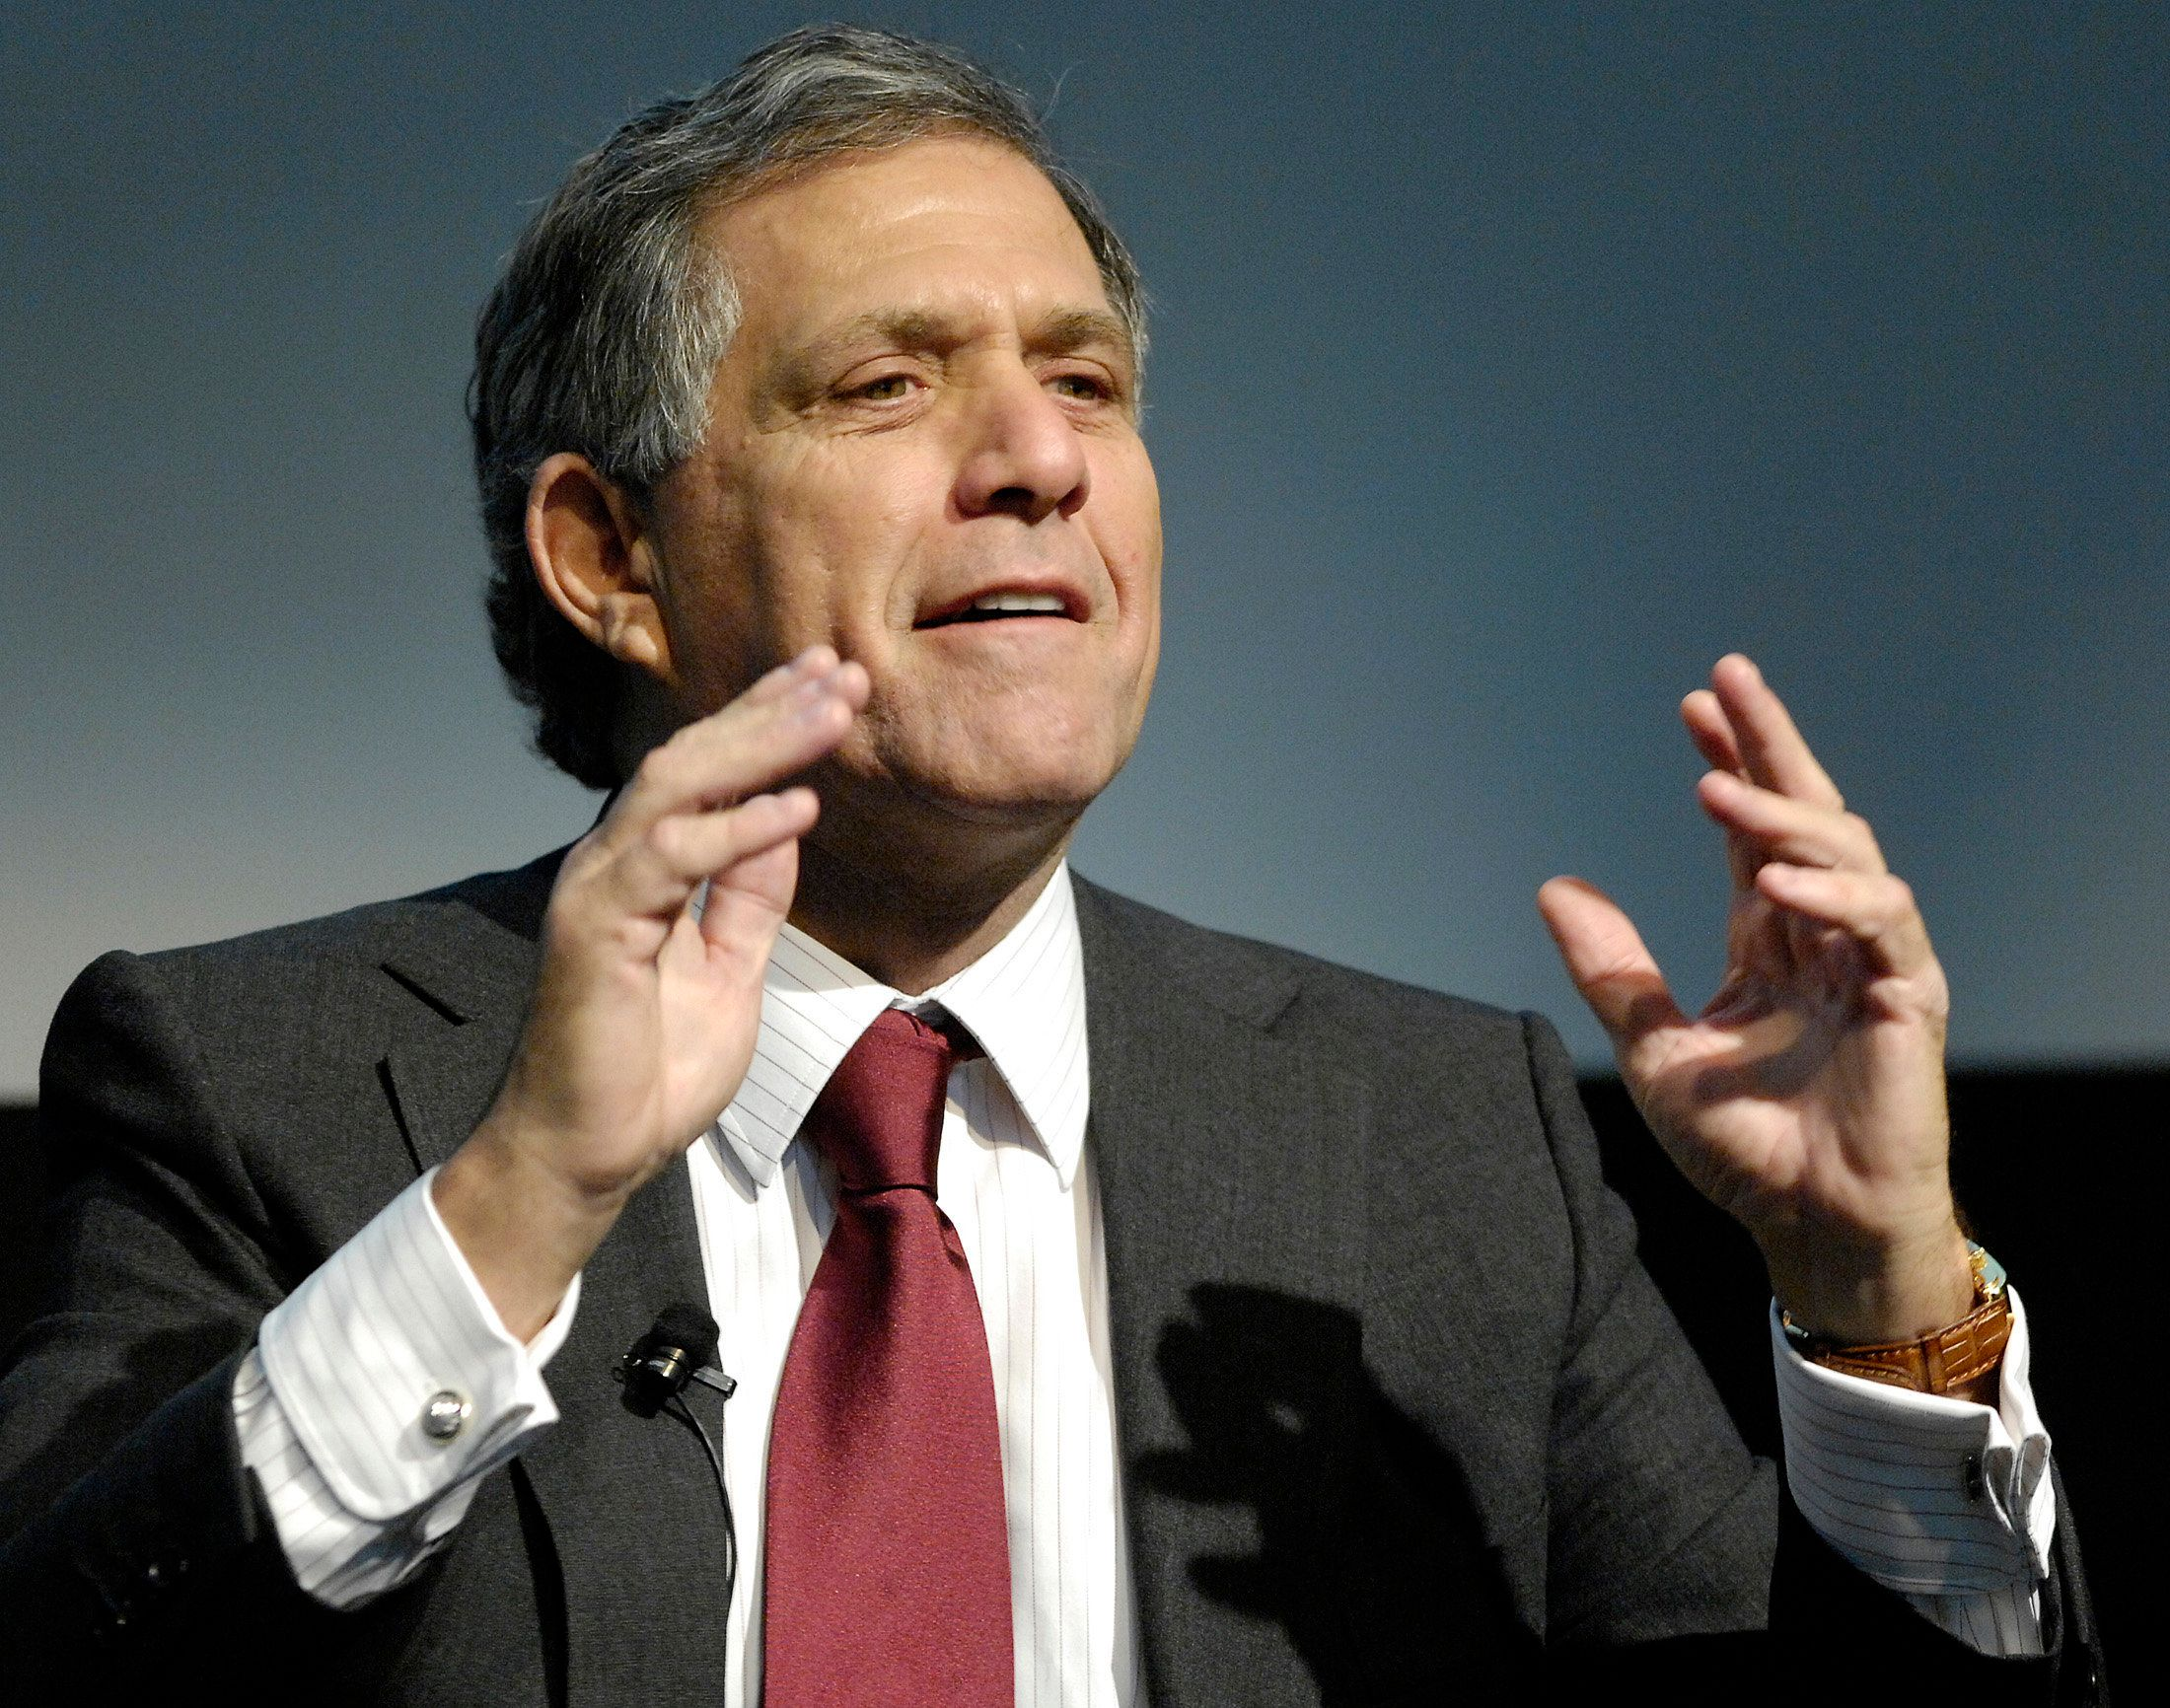 Several women have accused Les Moonves, pictured here in 2007, of harassment, intimidation and